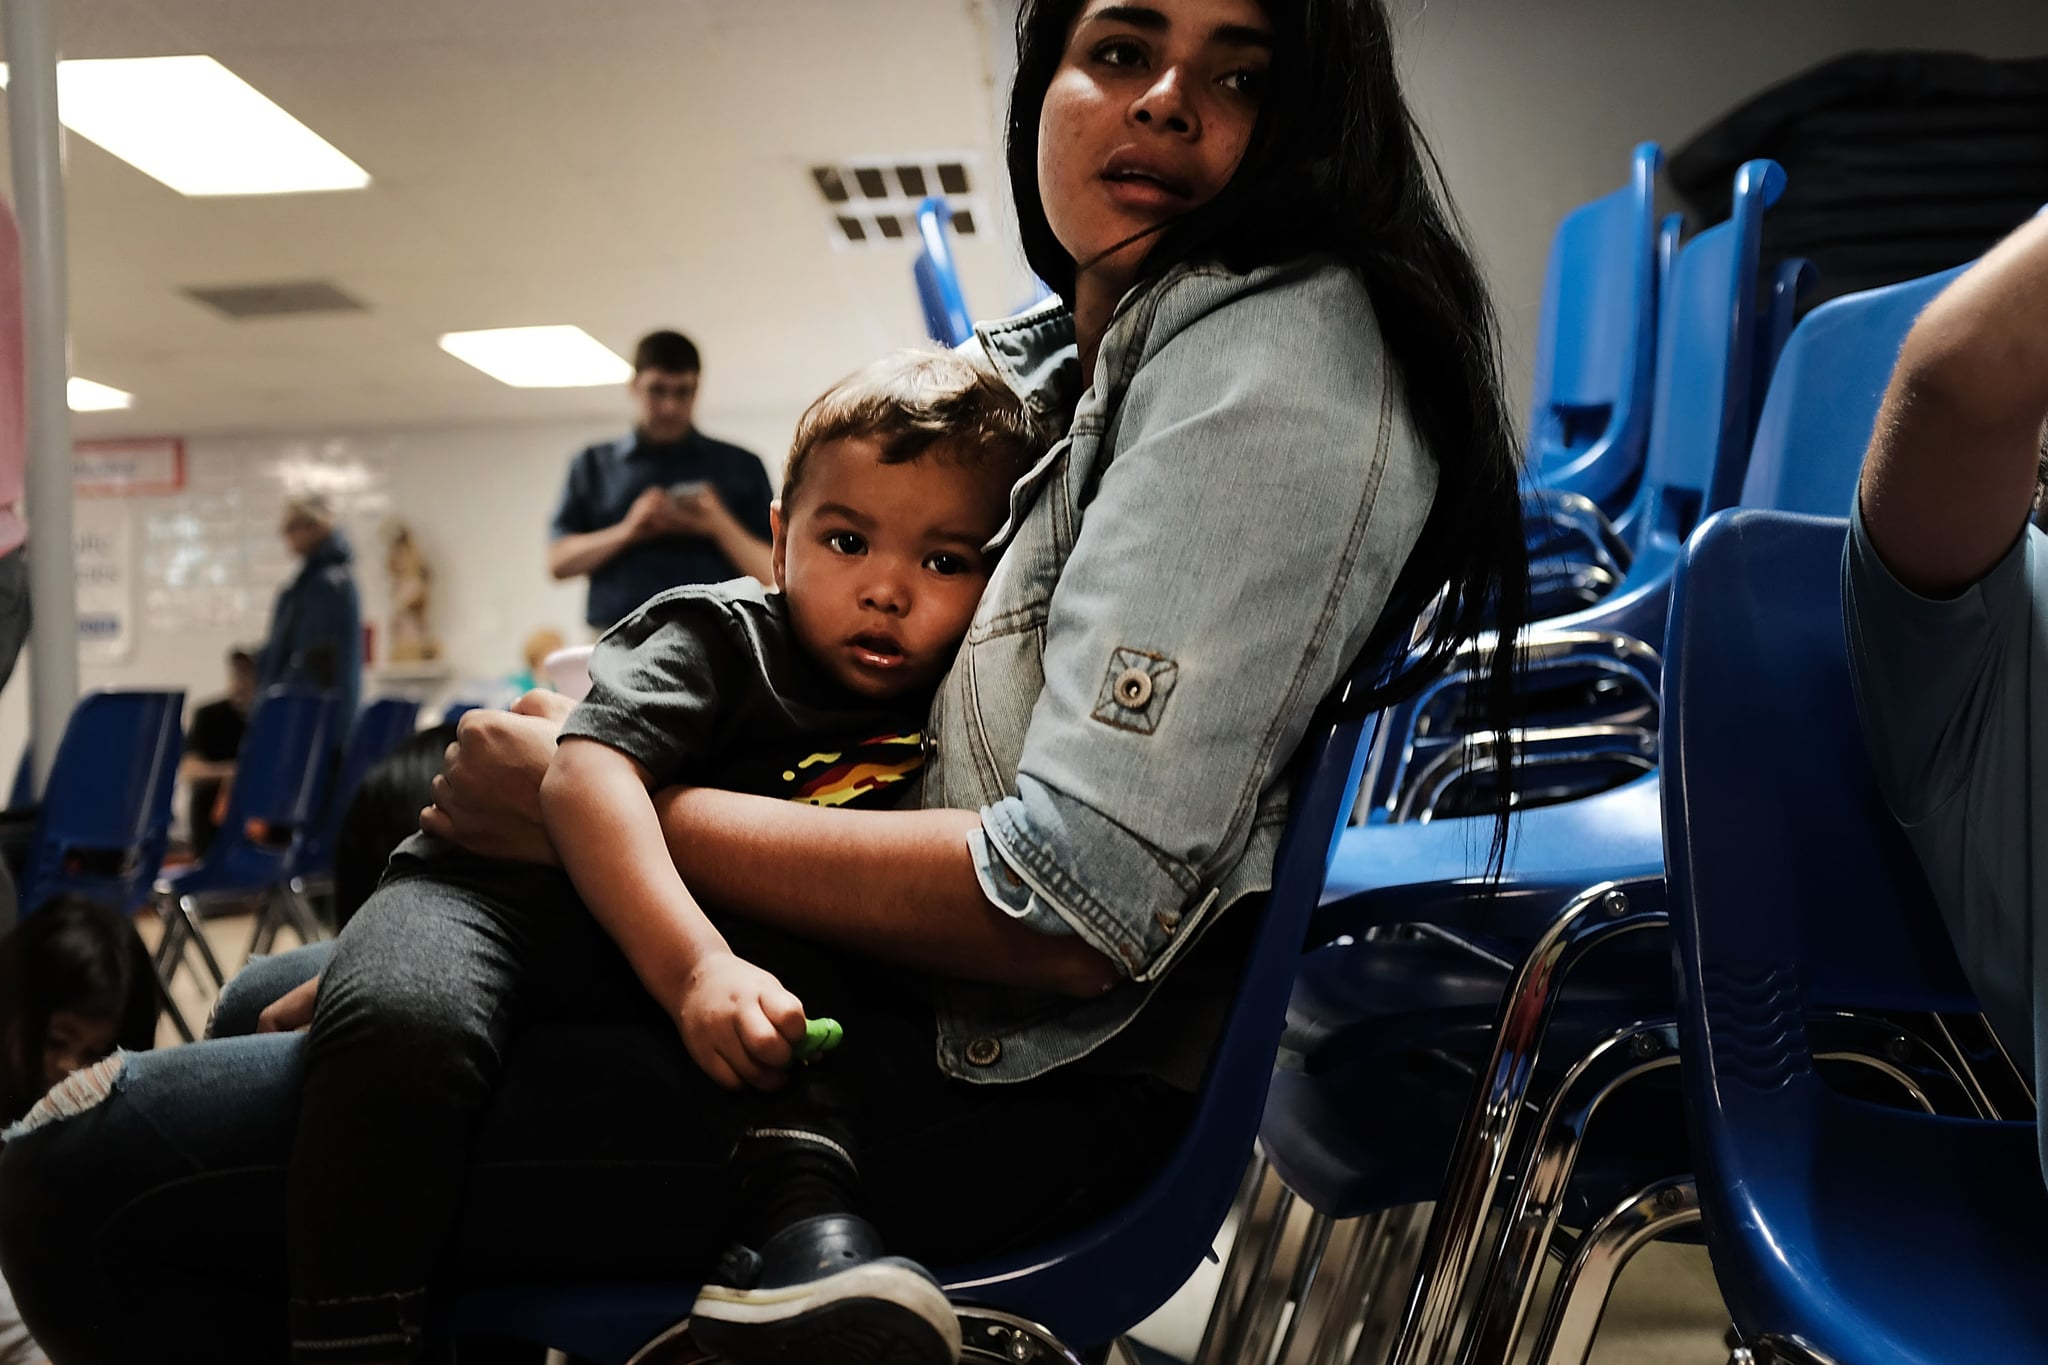 MCALLEN, TX - JUNE 21: A woman who idendtified herself as Jennifer sits with her son Jaydan at the Catholic Charities Humanitarian Respite Centre after recently crossing the U.S., Mexico border on June 21, 2018 in McAllen, Texas. Once families and individuals are released from Customs and Border Protection to continue their legal process, they are brought to the centre to rest, clean up, enjoy a meal and get guidance to their next destination. Before Trump signed an executive order yesterday that the administration says halts the practice of separating families seeking asylum, more than 2,300 immigrant children had been separated from their parents in the  zero-tolerance policy for border crossers. (Photo by Spencer Platt/Getty Images)